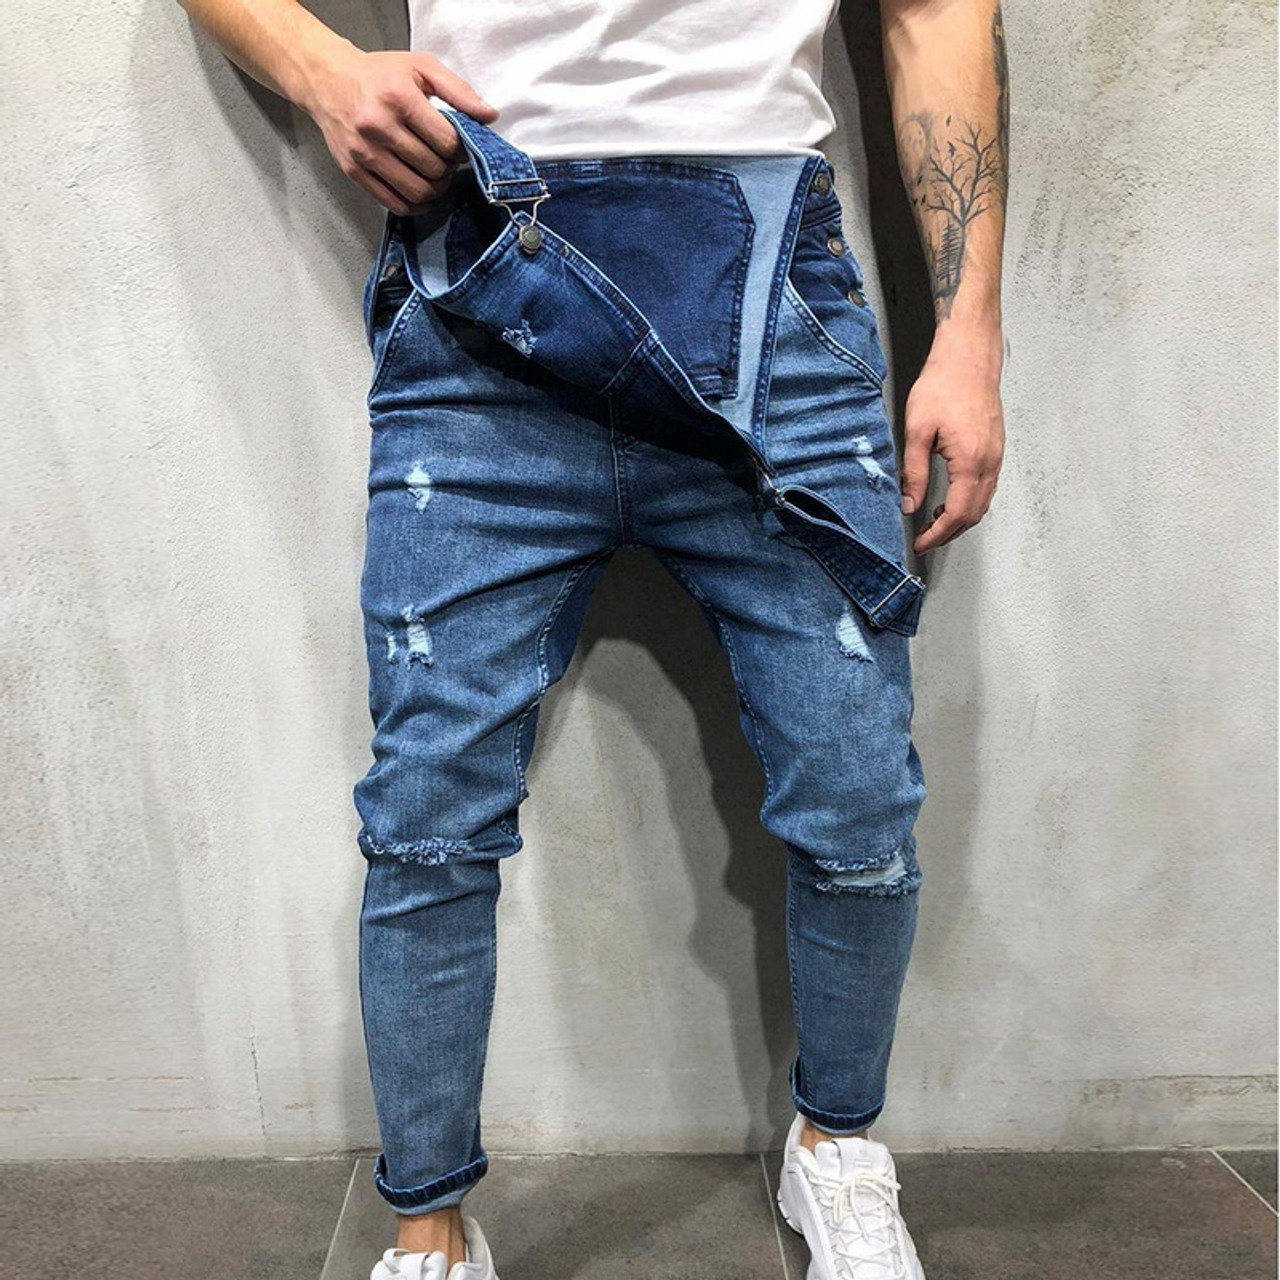 New Men/'s Sim Ripped Holes Denim Jeans Casual Suspender Fashion Pants Overalls